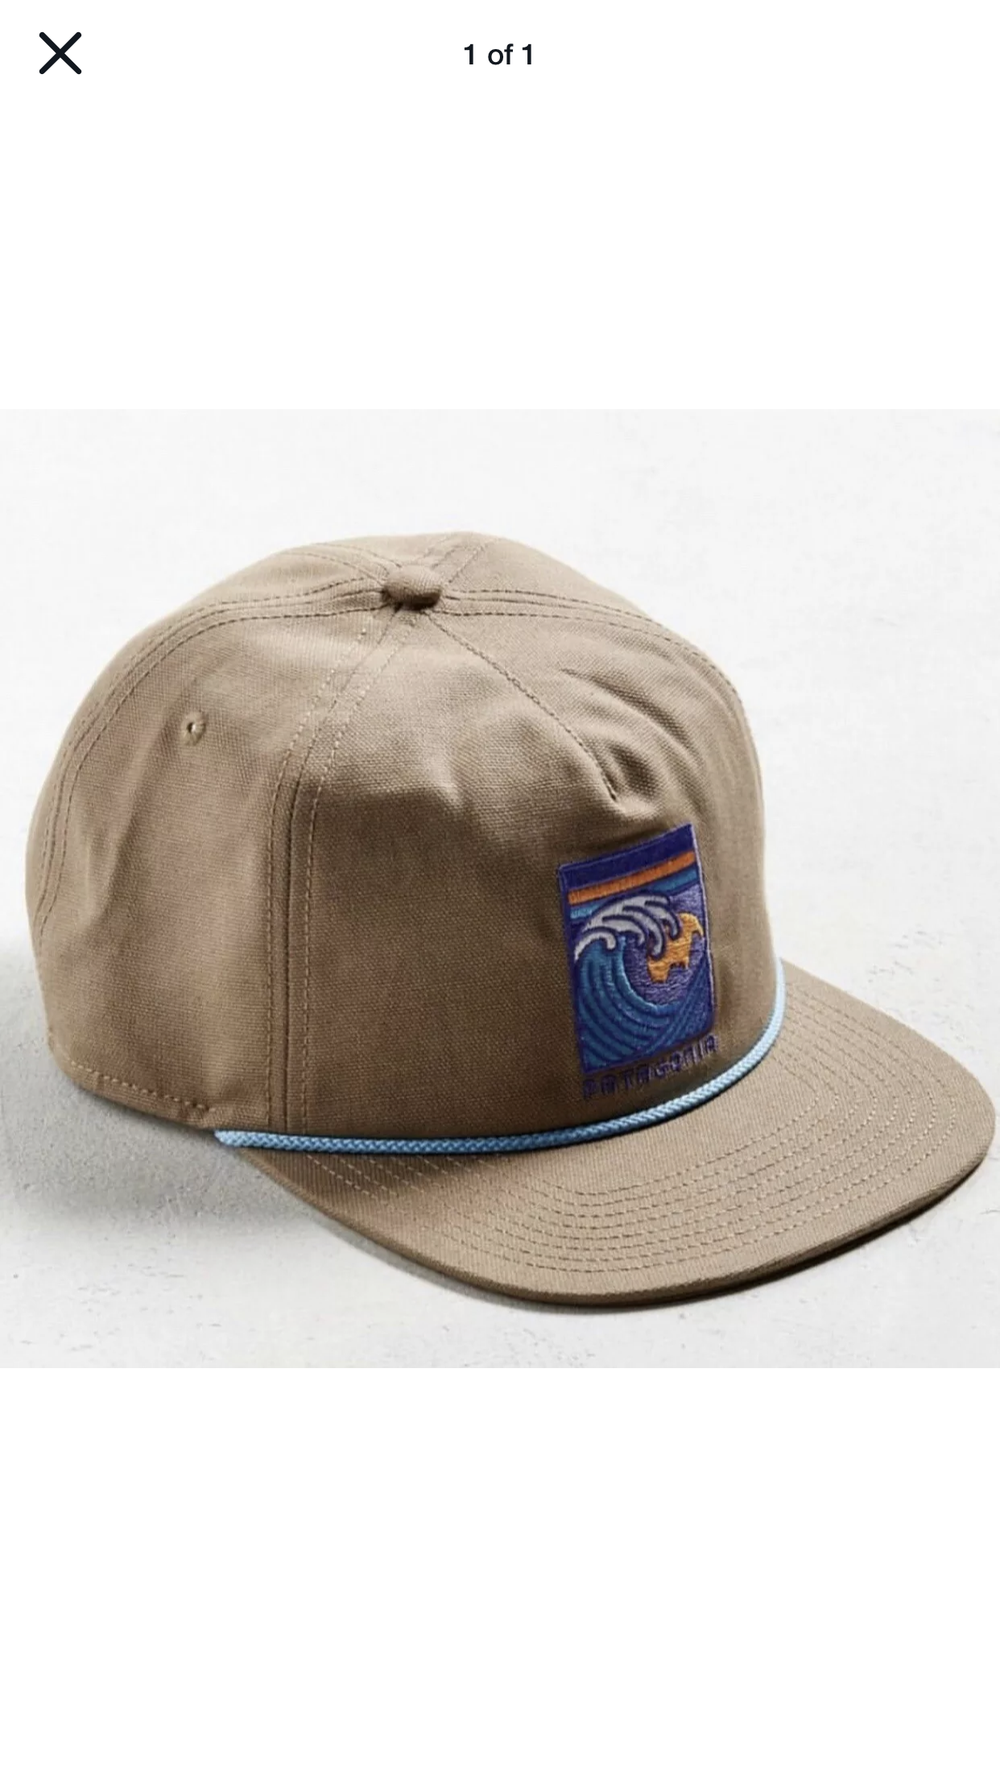 Image of Patagonia Viewfinder Hat